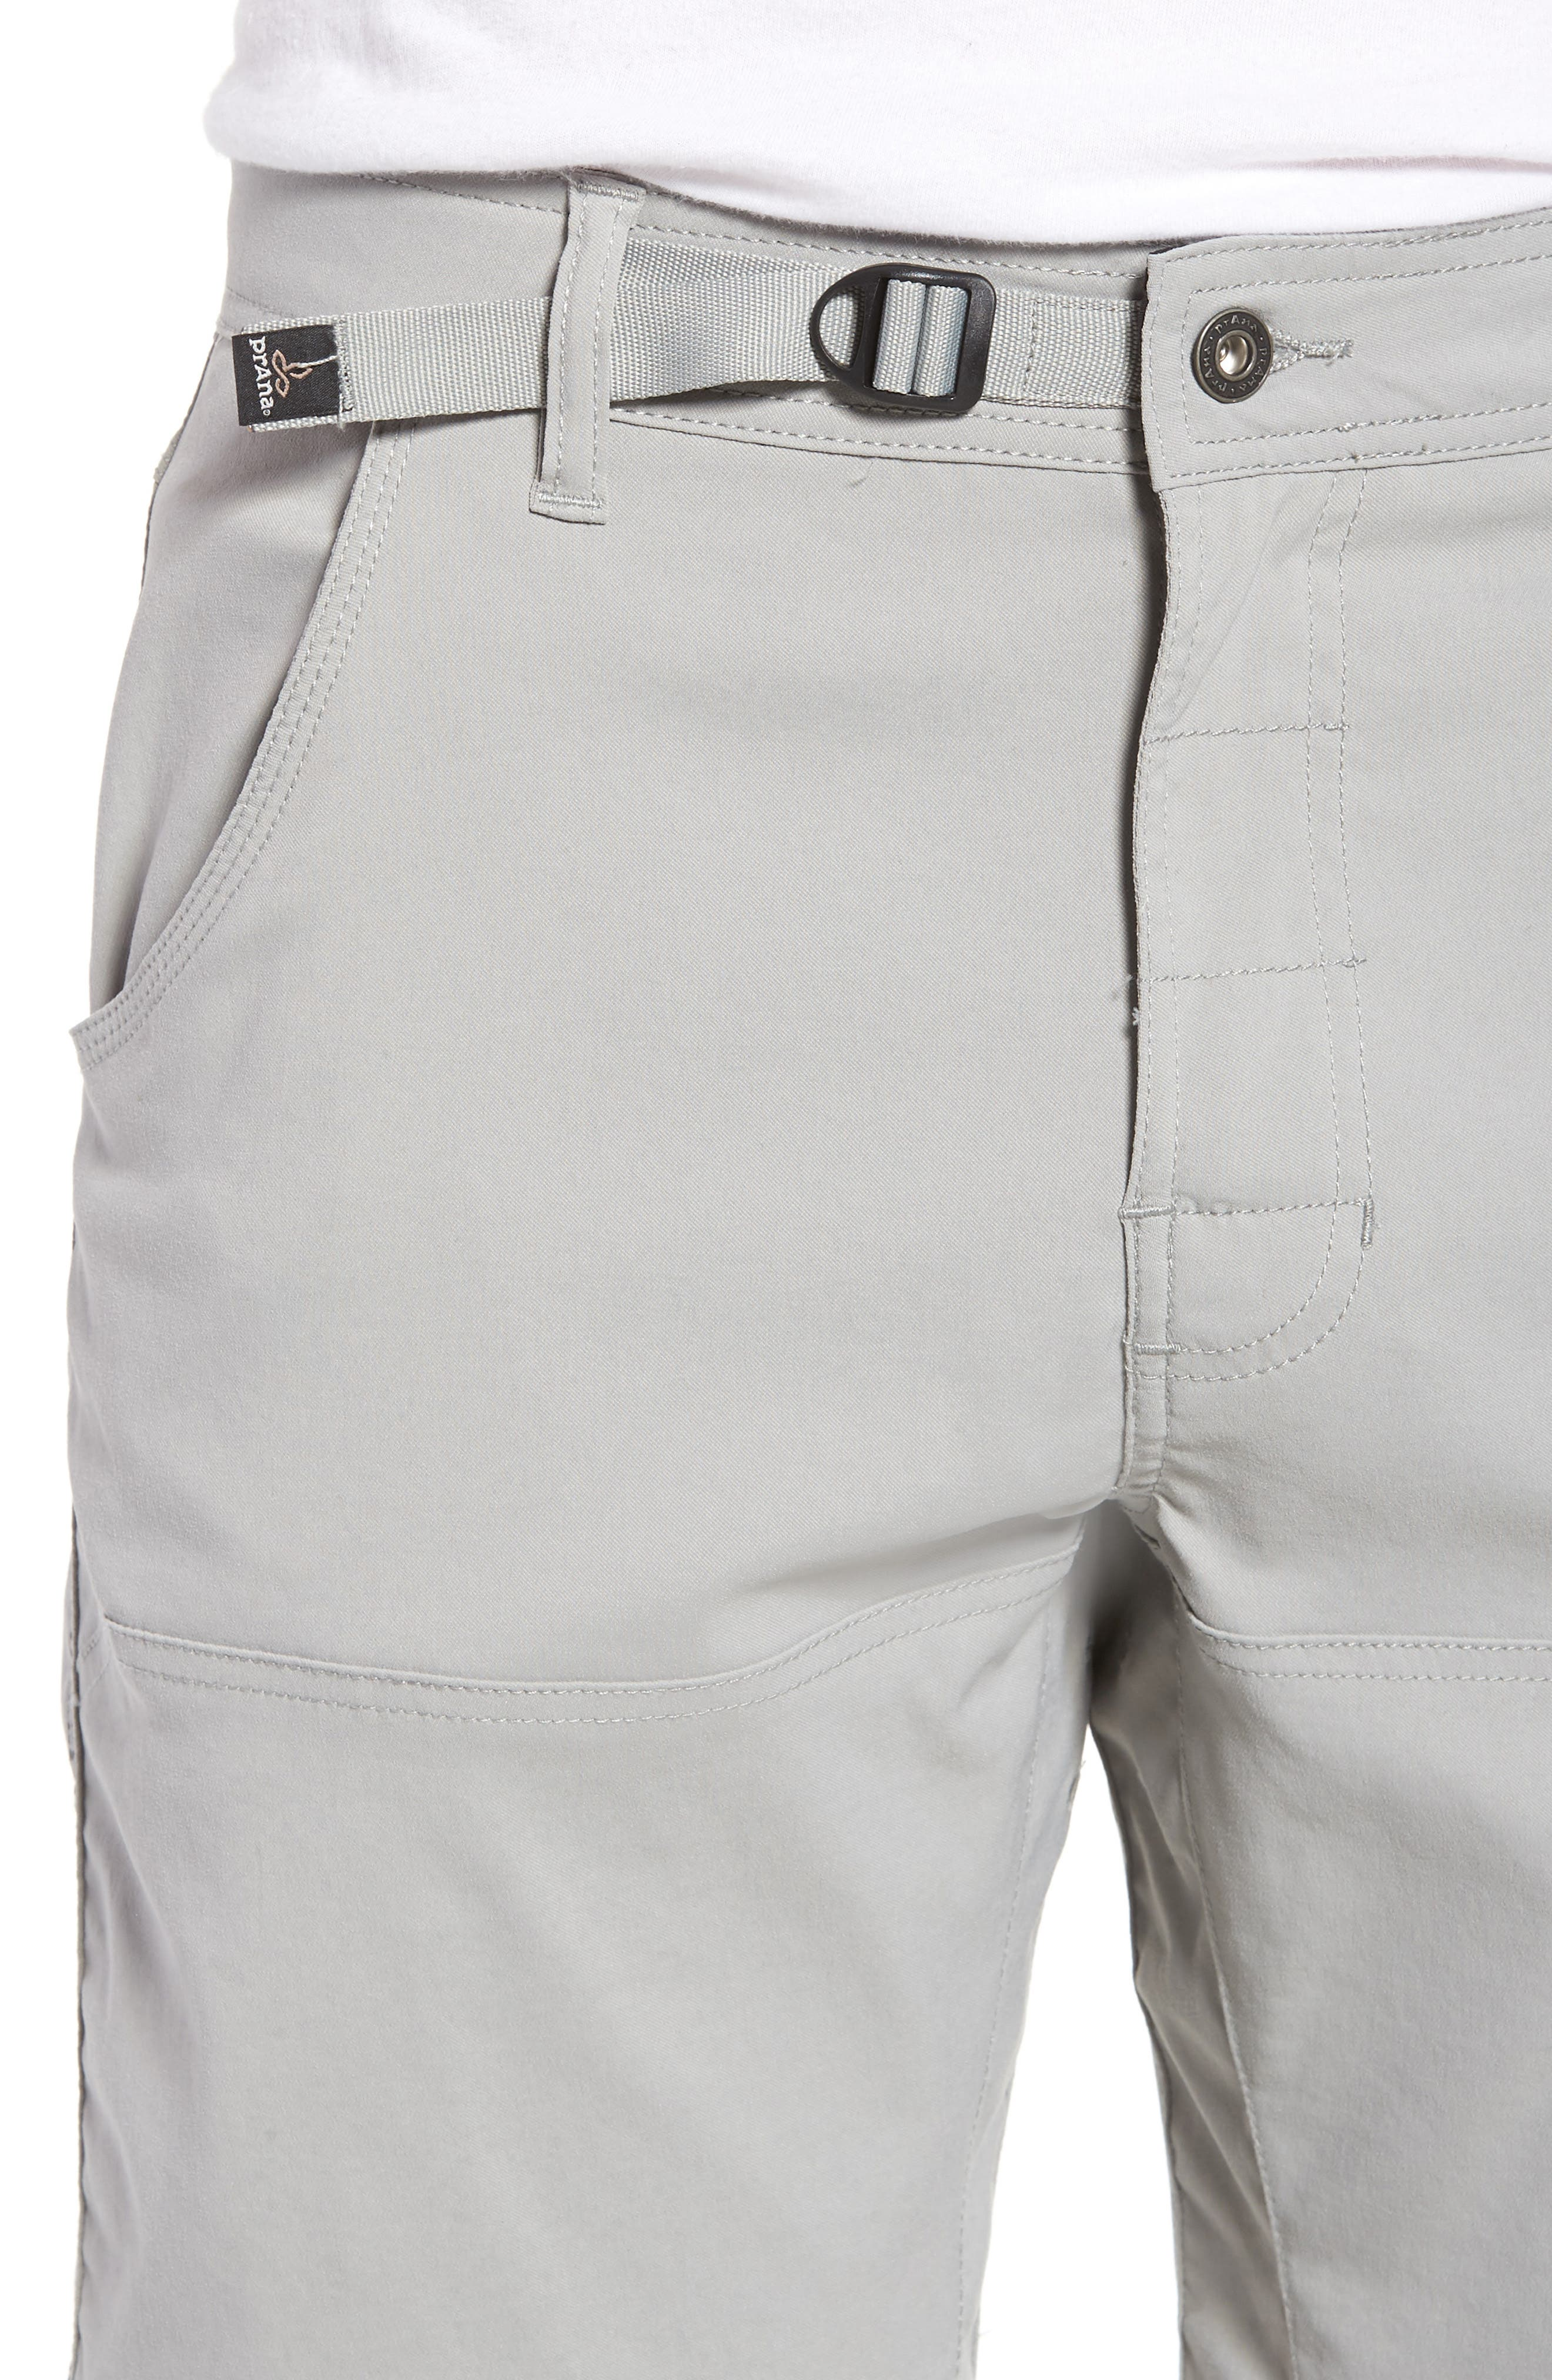 Zion Stretch Shorts,                             Alternate thumbnail 4, color,                             Grey